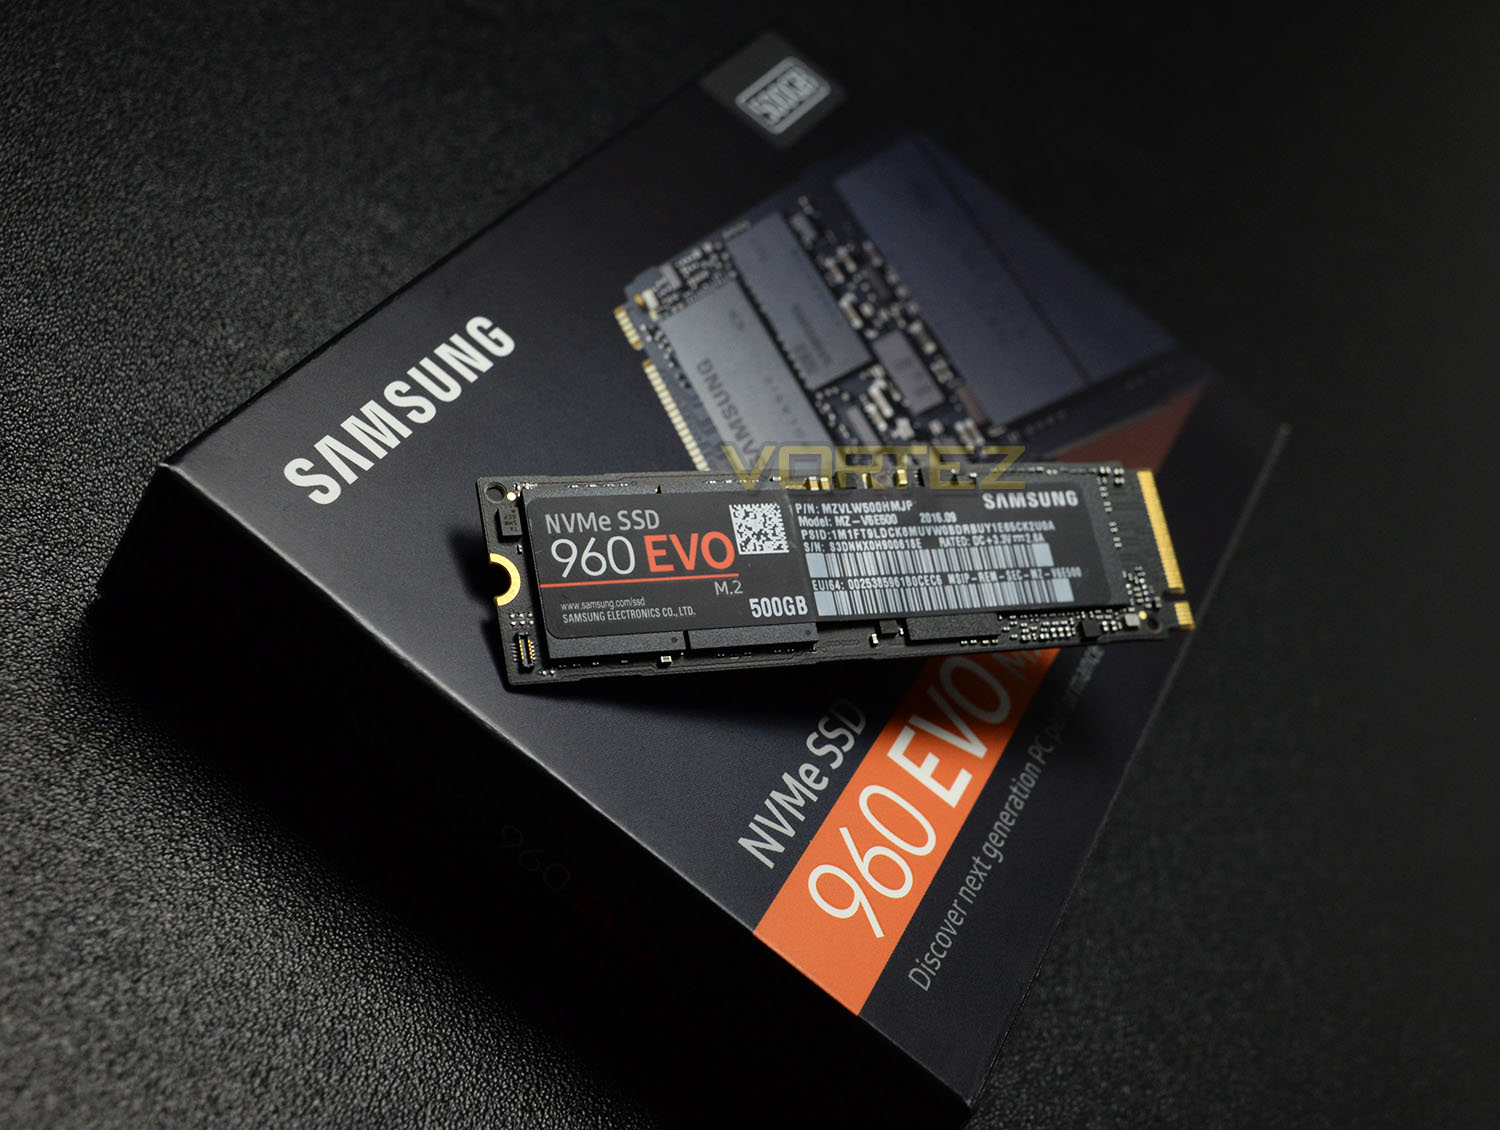 samsung 960 evo review - intro.jpg